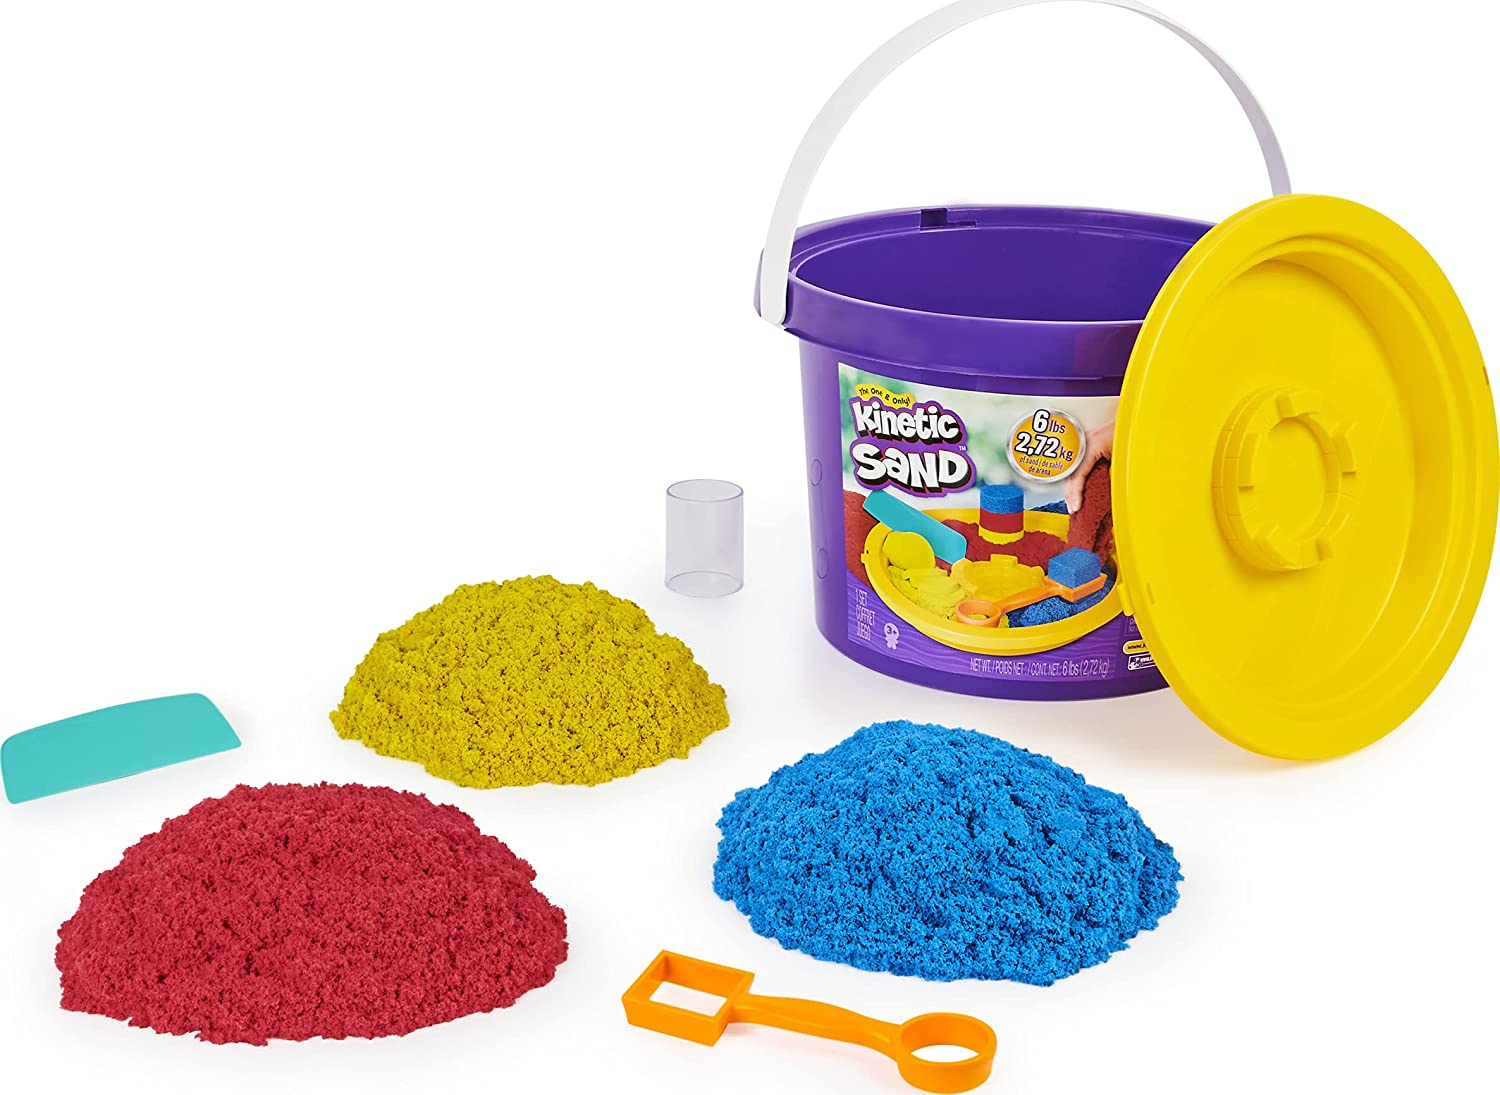 Kinetic Sand, 6lbs Bucket with 3 Colors of All-Natural Kinetic Sand and 3 Tools, Play Sand Sensory Toys for Kids Ages 3 and up